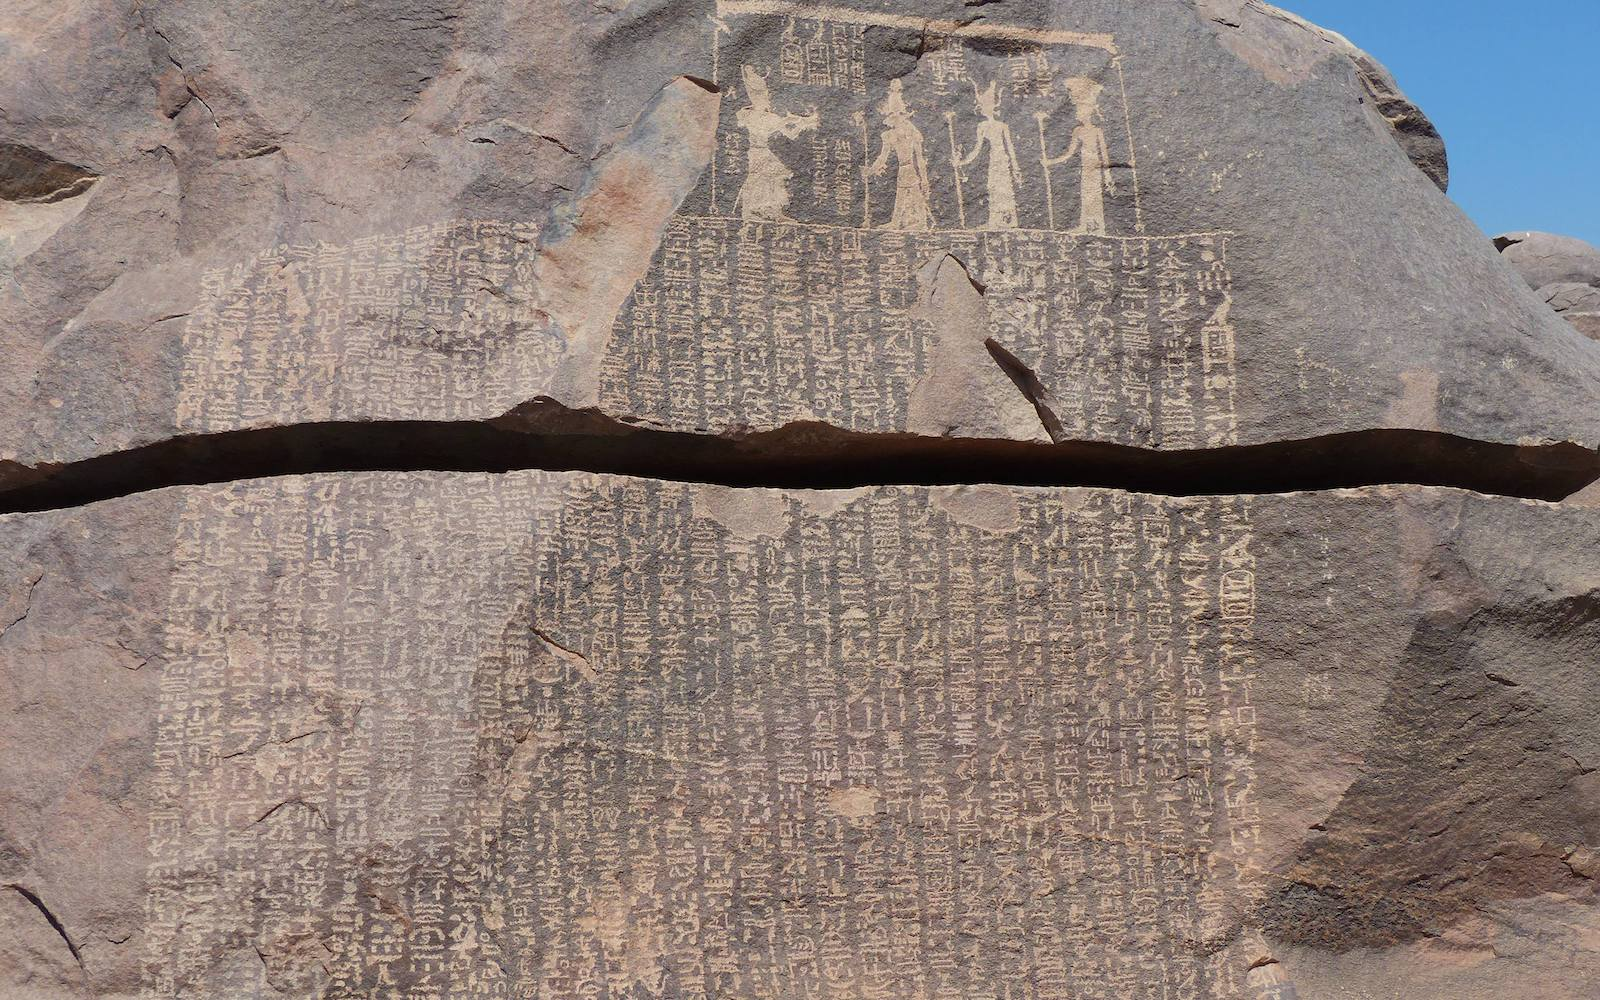 Imhotep: A Sage between Fiction and Reality